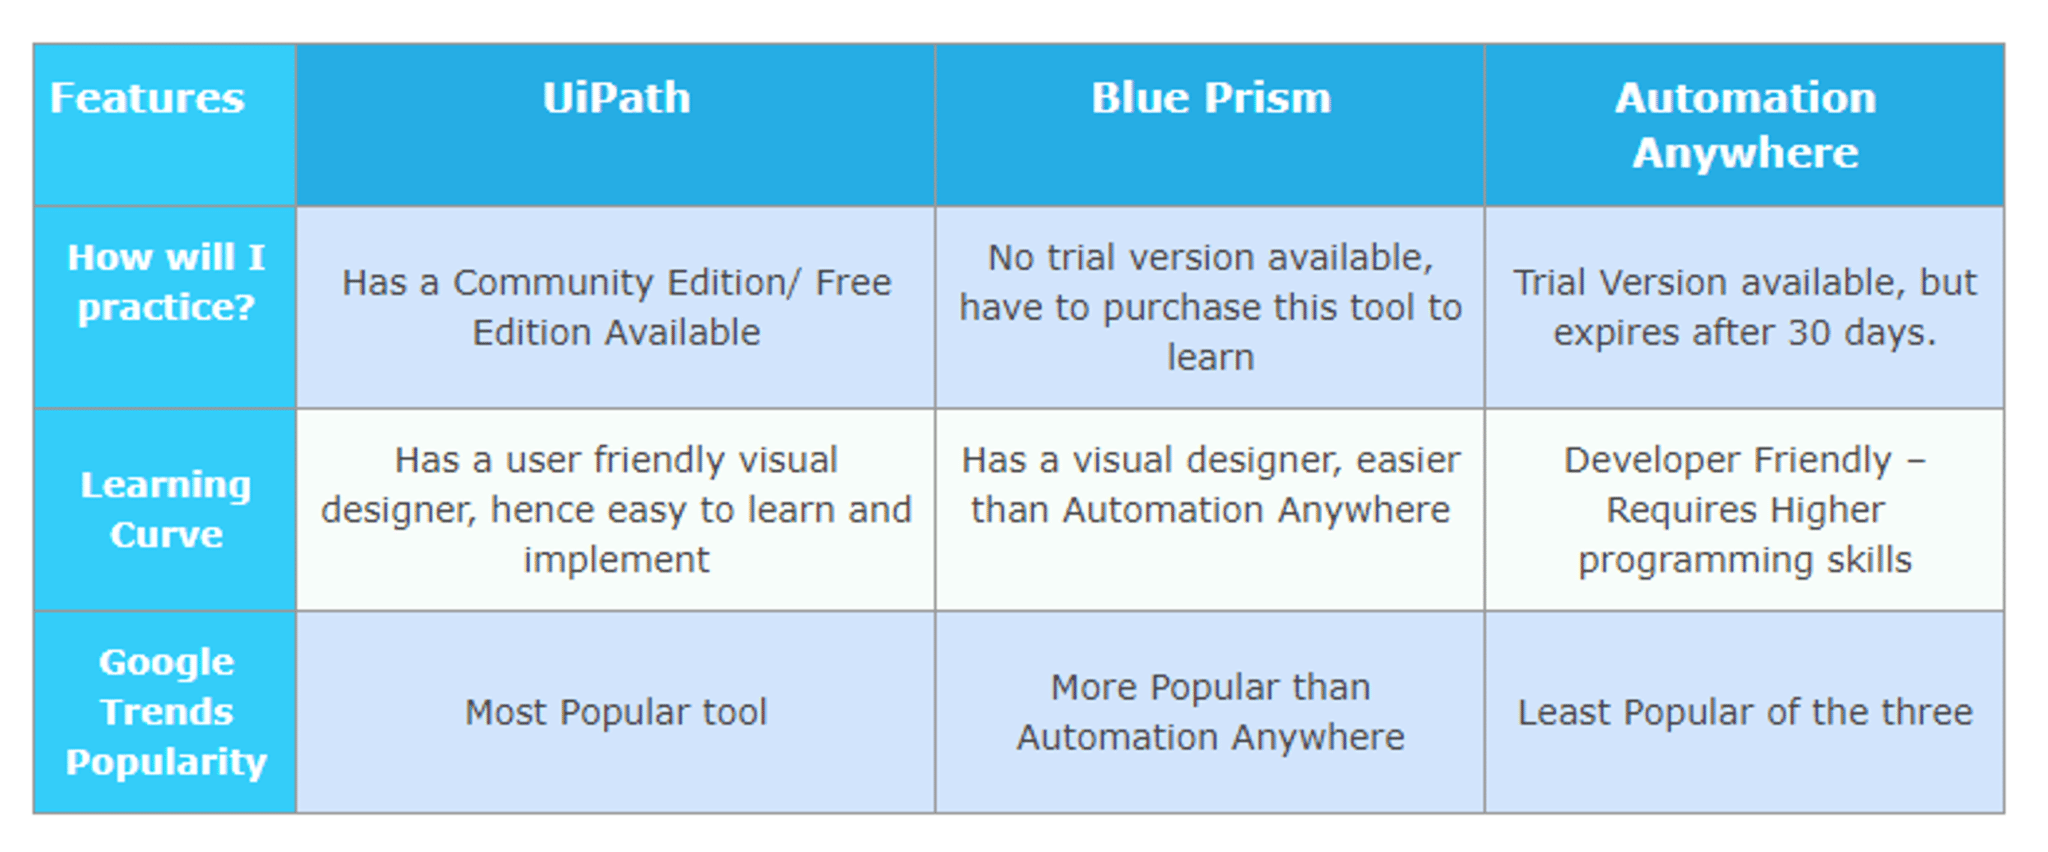 Difference between UiPath vs Blue prism vs automation anywhere - rpa uipath interview questions - edureka